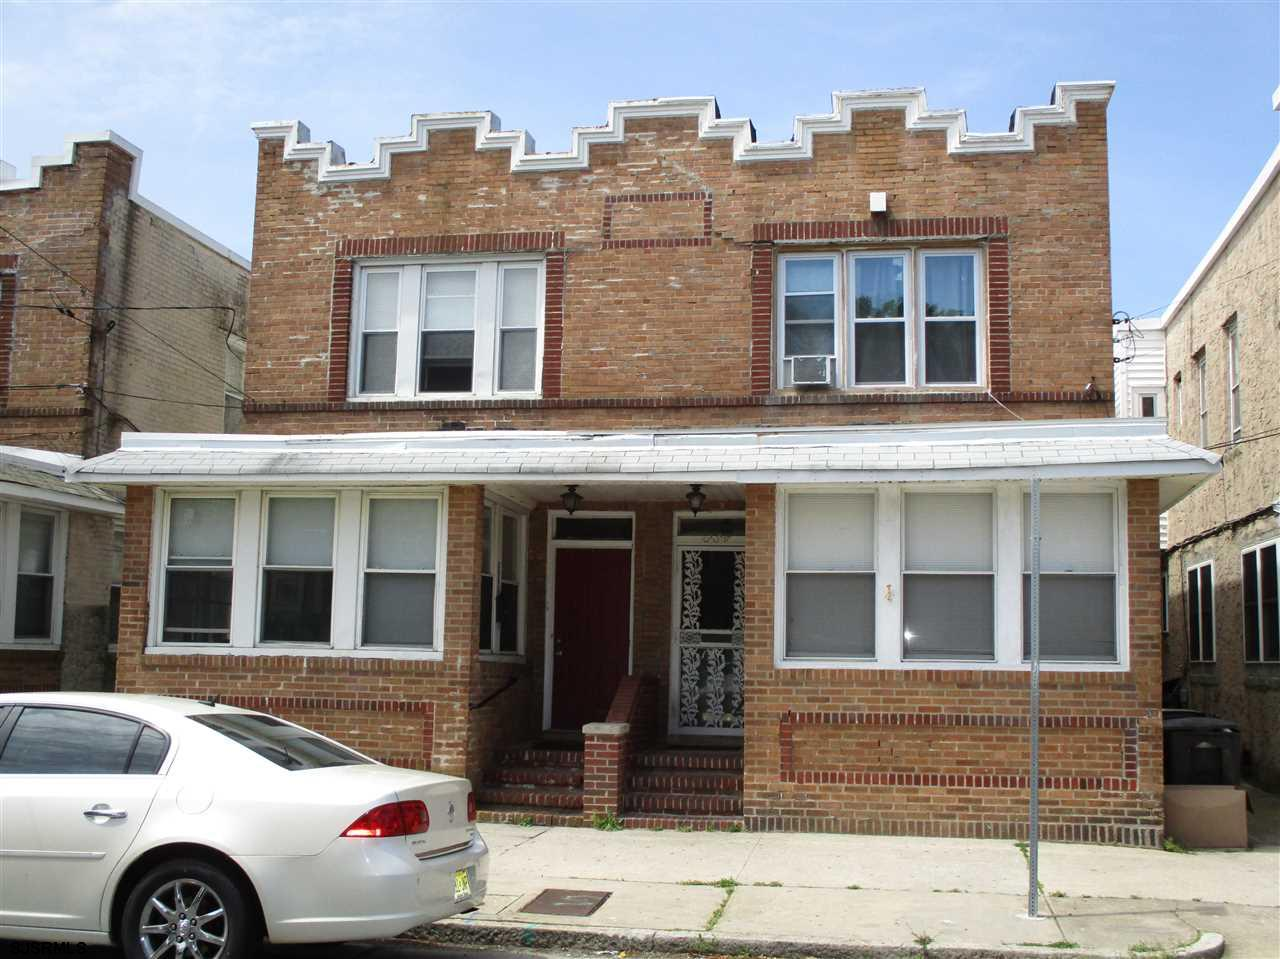 4 bedroom row home. 354 N. Connecticut is also available under MLS#537367. Own the whole building an